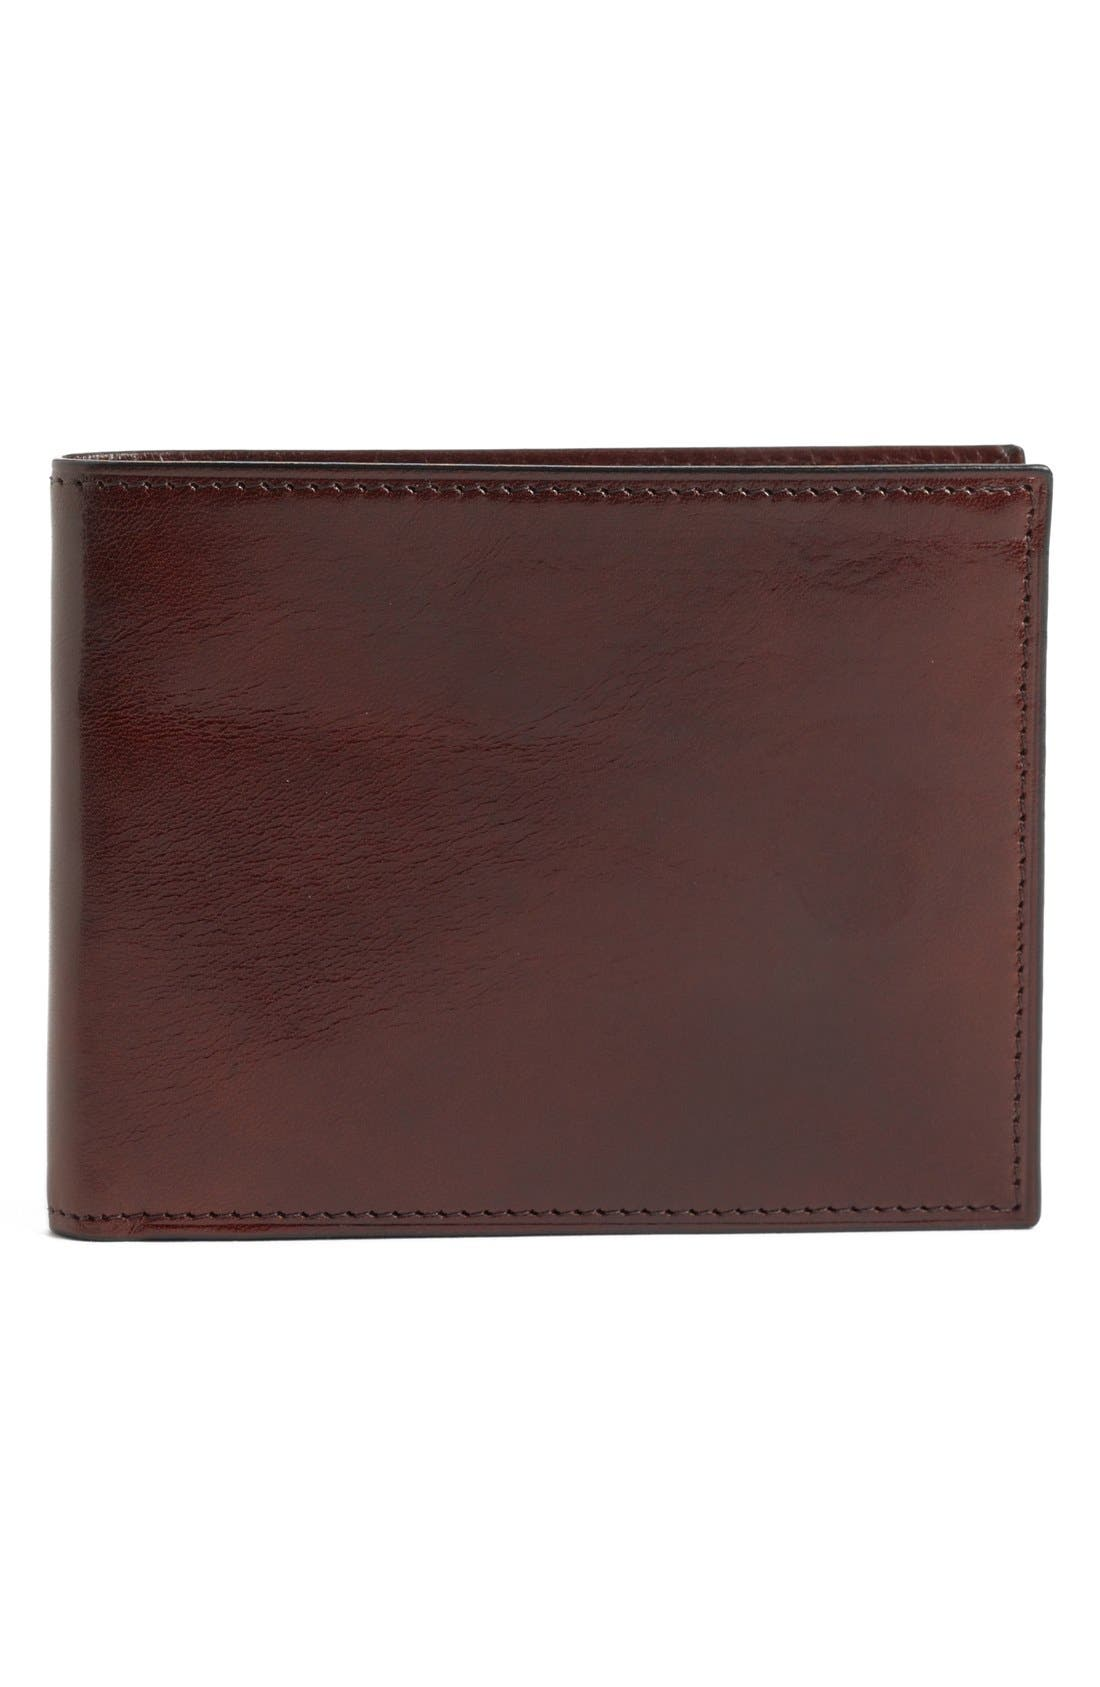 Alternate Image 1 Selected - Bosca 'Old Leather' L-Fold Wallet